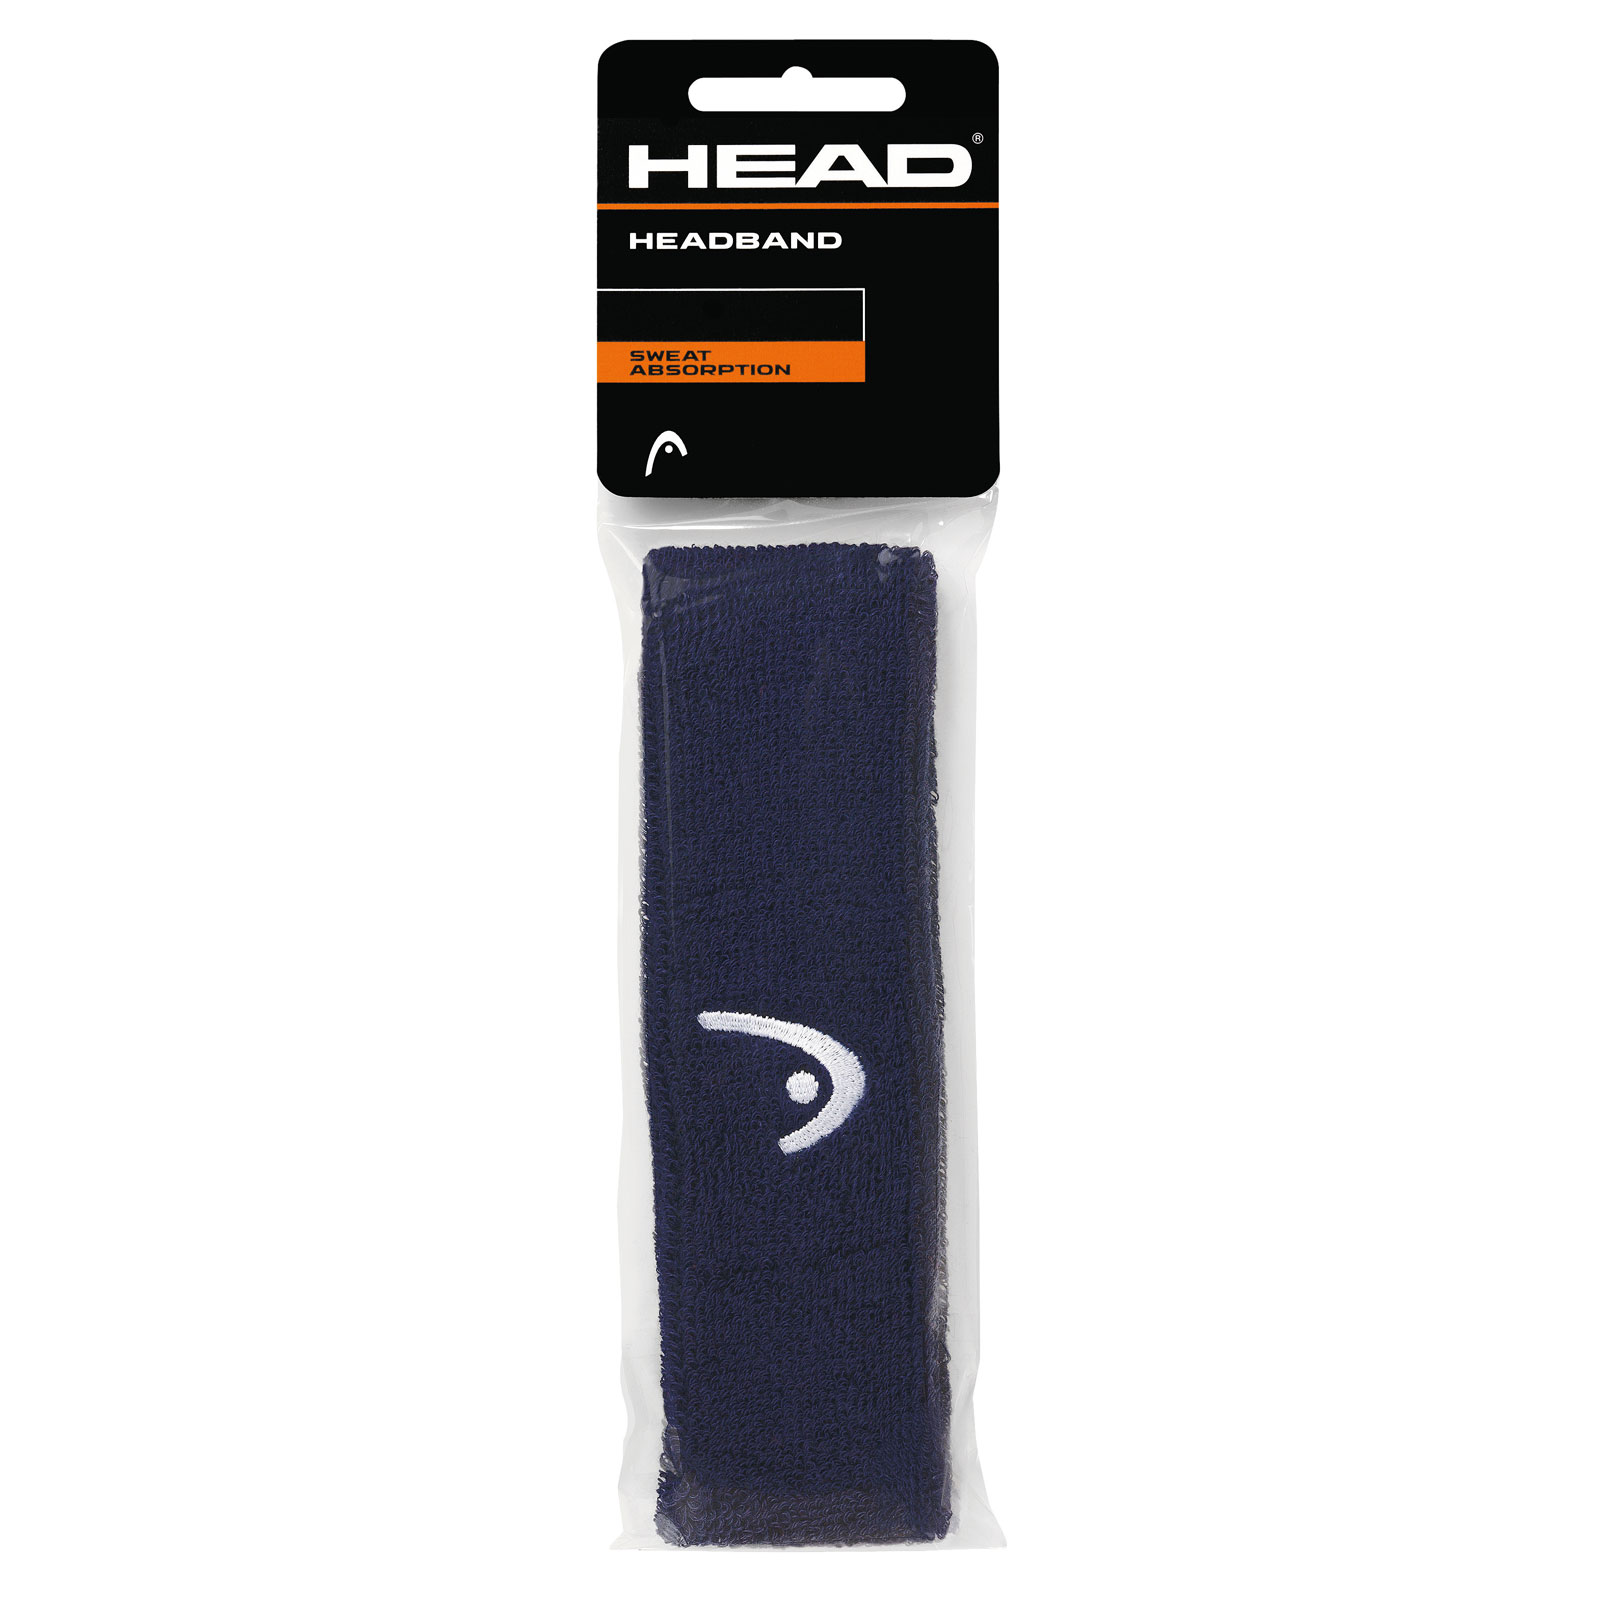 HEAD Headband 2016 navy